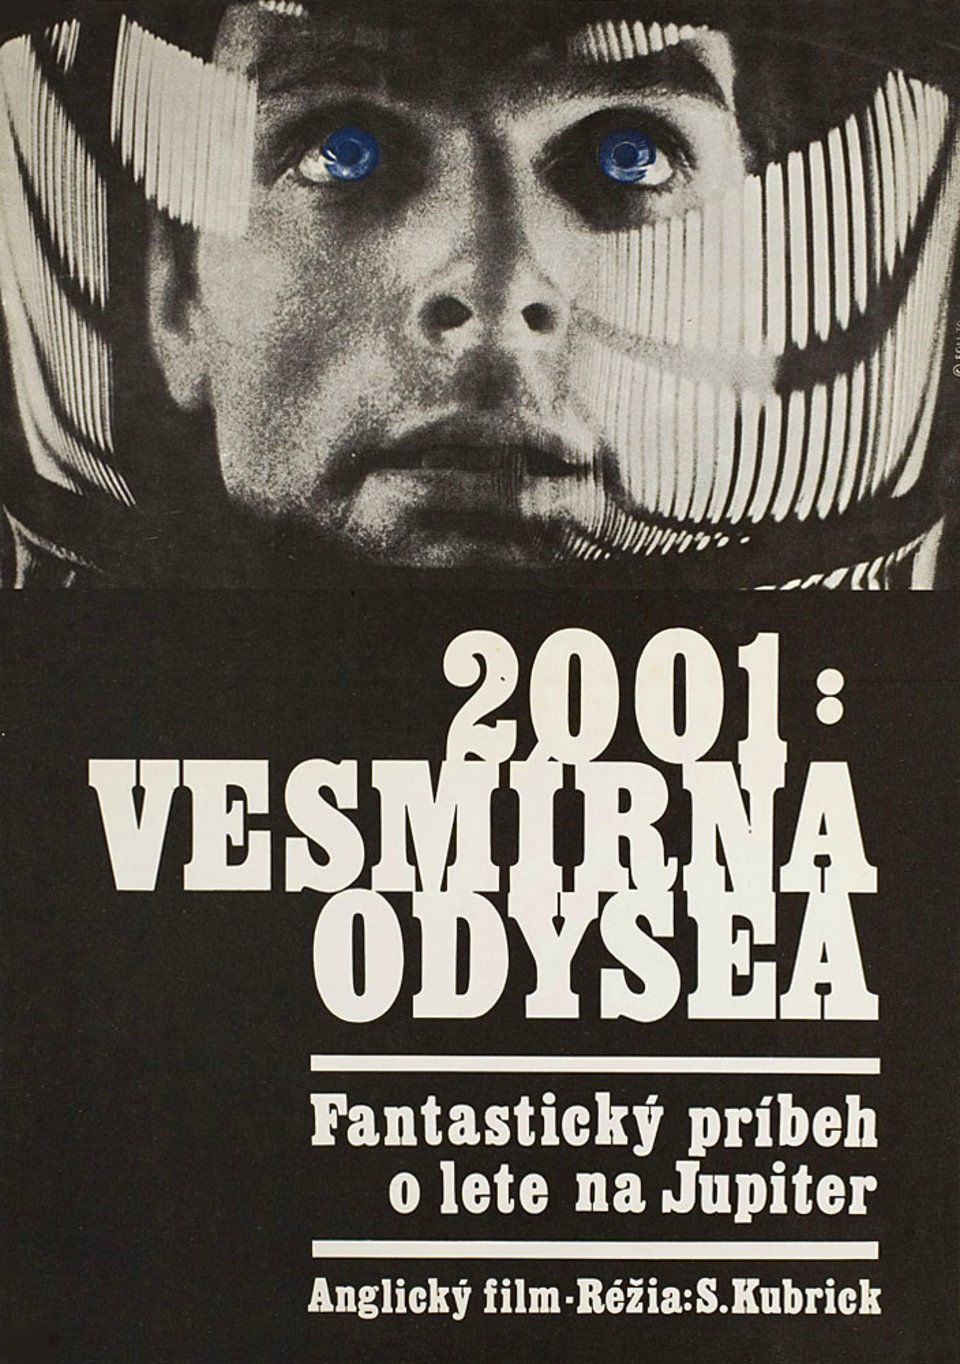 Vintage Czech Movie Posters From The 1970s Space Odyssey Movie